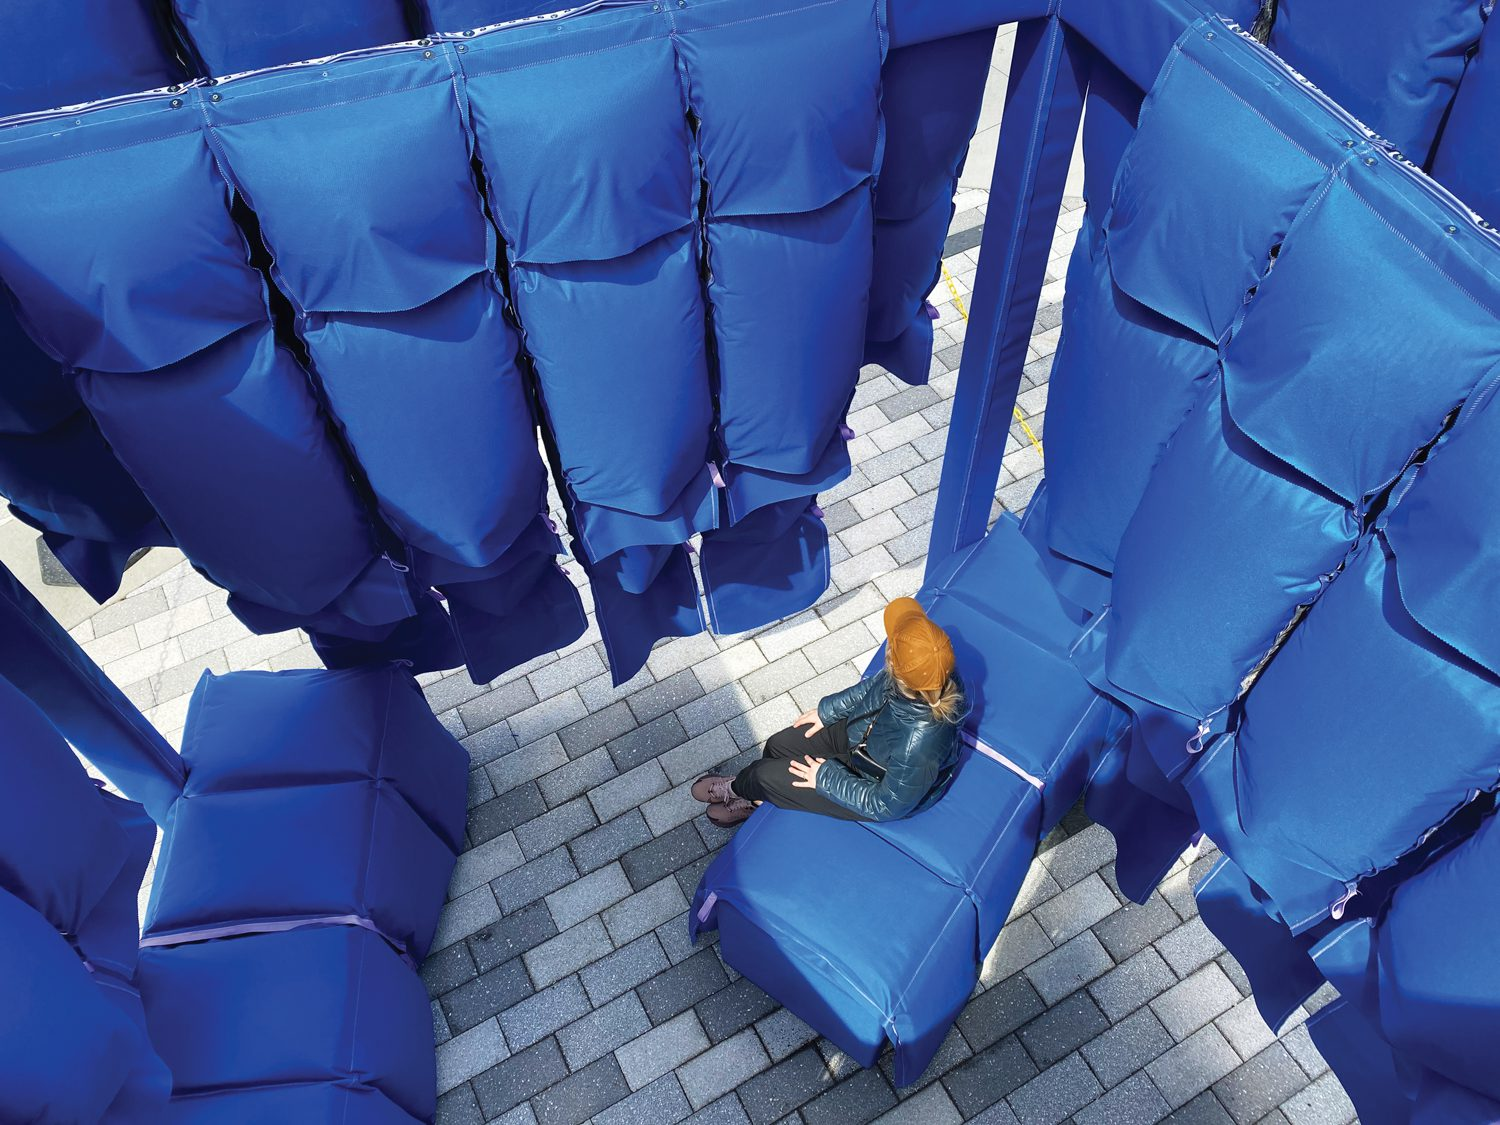 Loose Fit by Elle Gerdeman, pictured here, is a large, pillowy, cobalt-blue structure composed of polished vinyl cells were packed with recycled denim from Blue Jeans Go Green